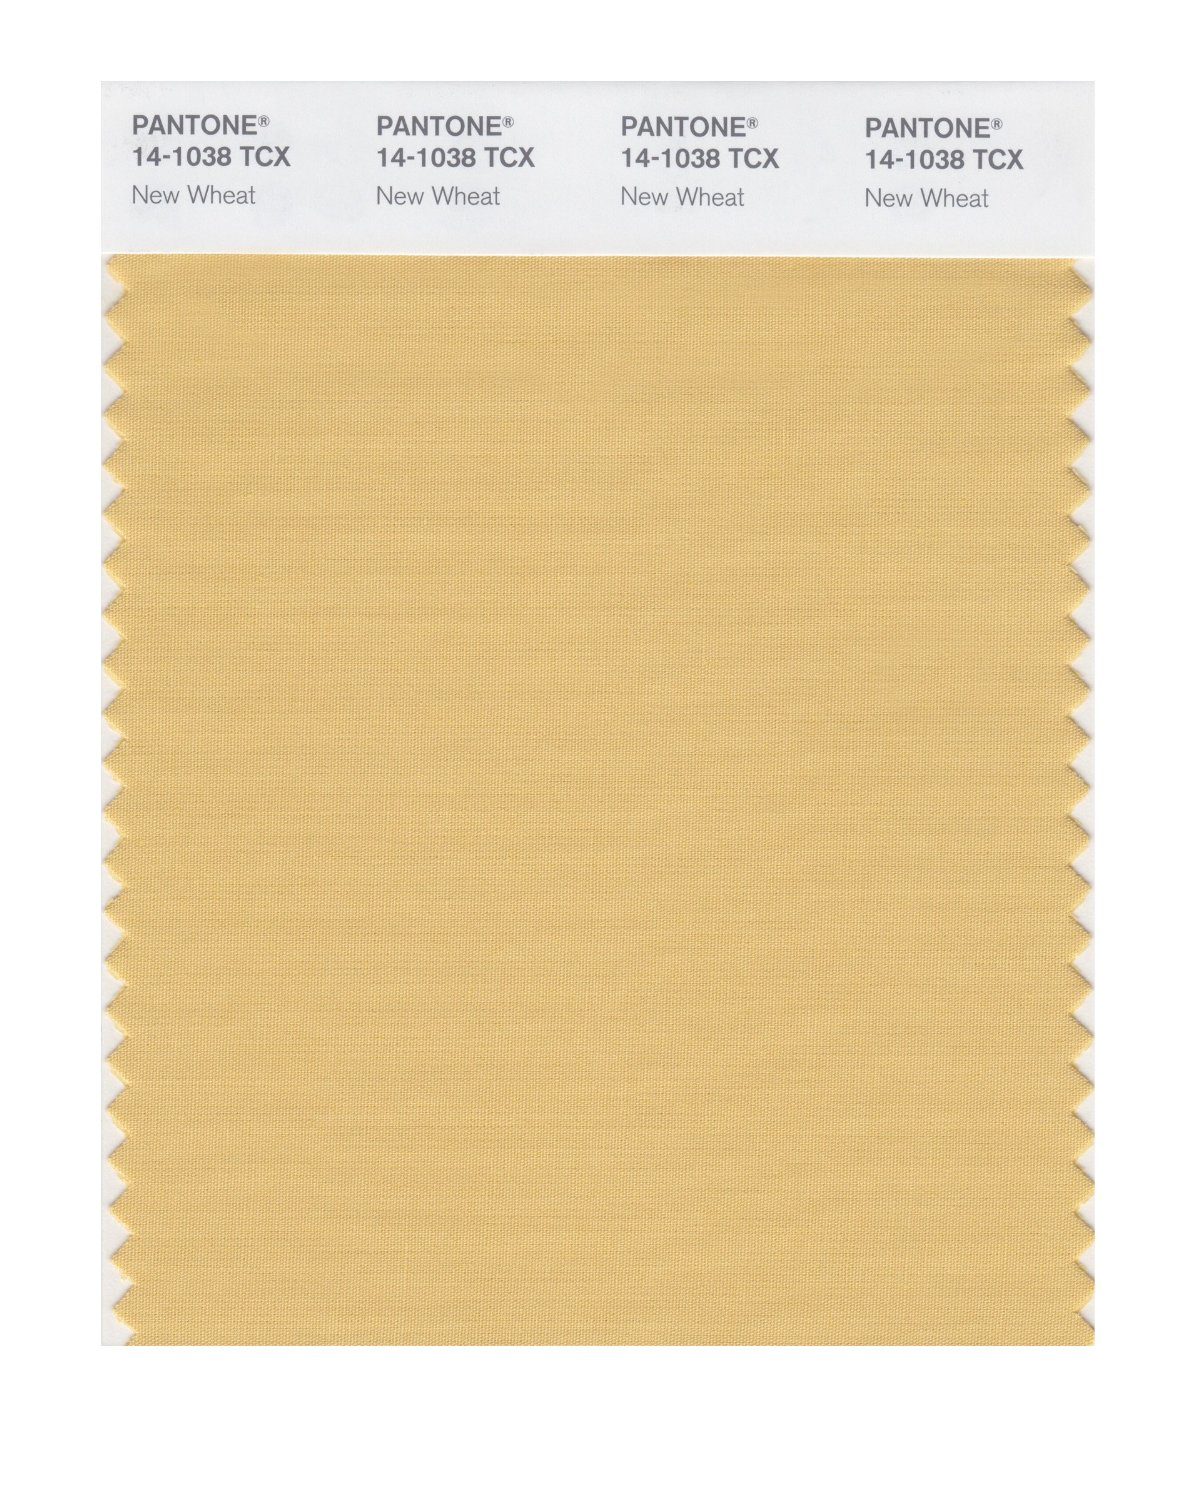 Pantone Smart Swatch 14-1038 New Wheat